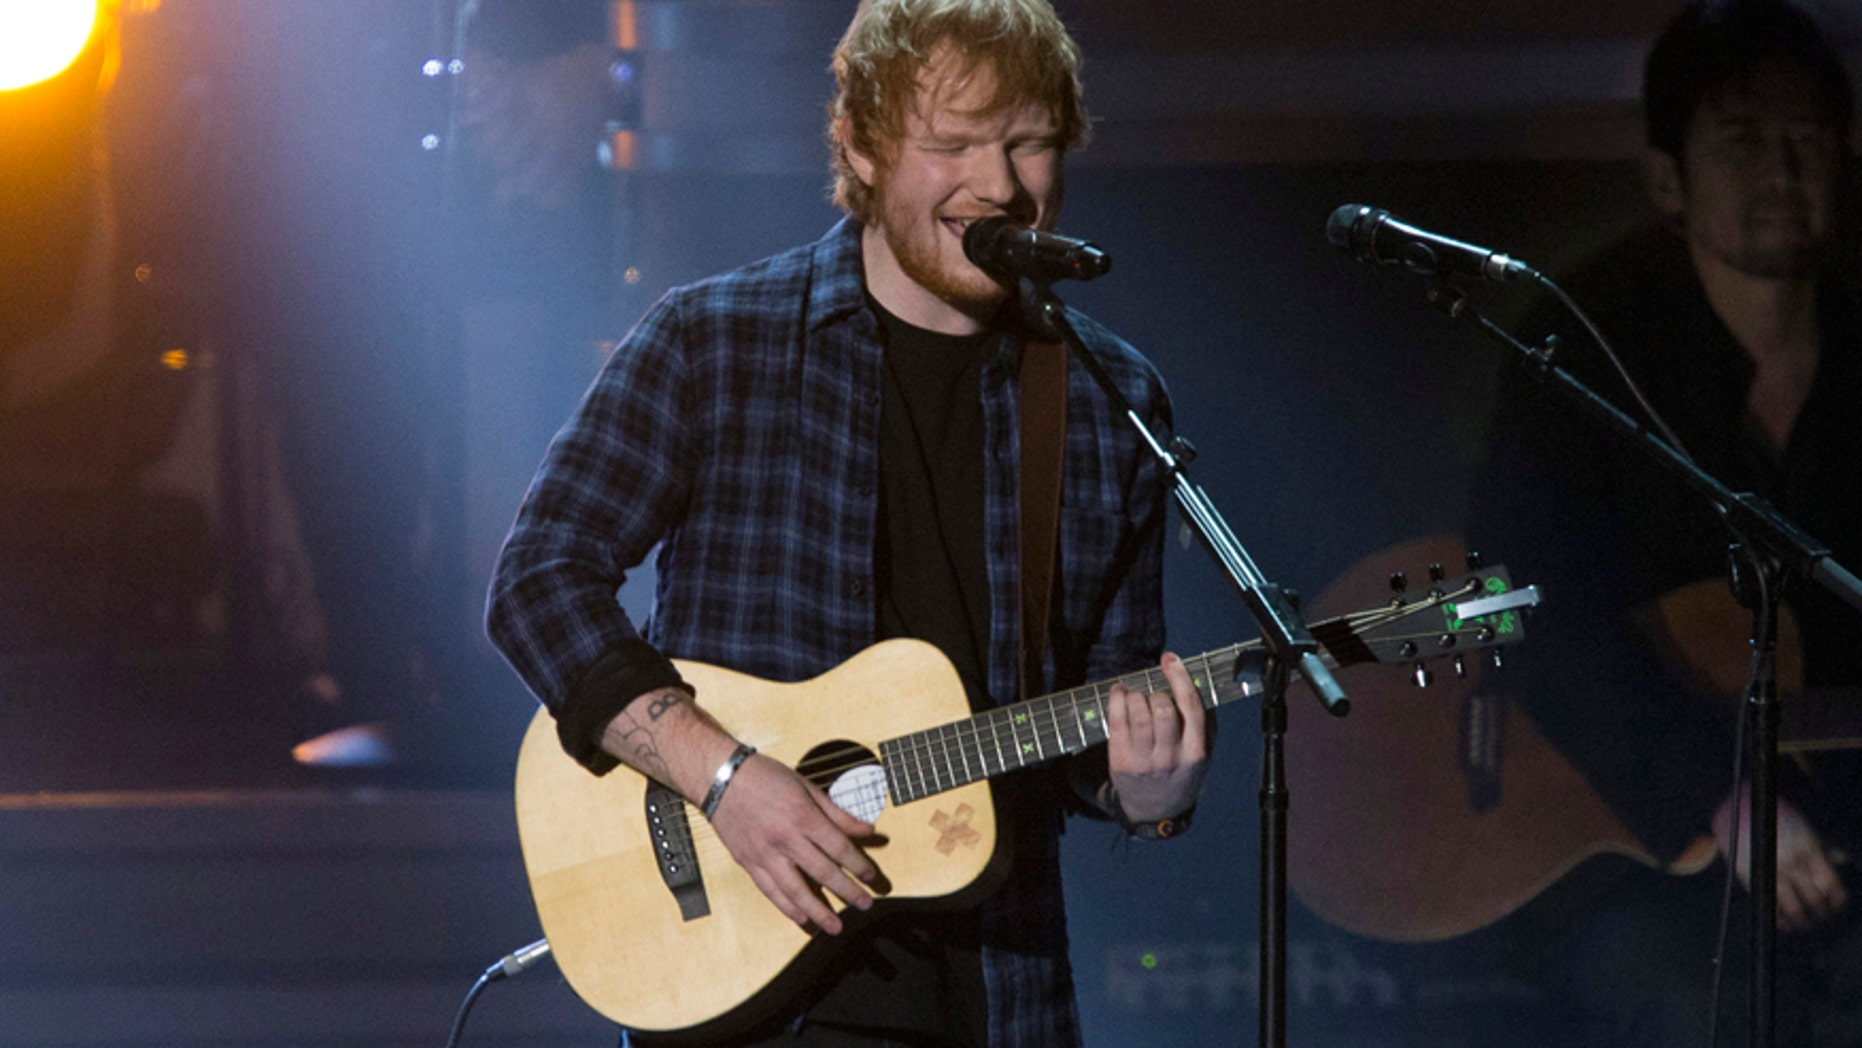 """British singer Ed Sheeran performs """"I Was Made To Love Her"""" during the taping of """"Stevie Wonder: Songs In The Key Of Life - An All-Star GRAMMY Salute"""" concert at the Nokia Theatre in Los Angeles, California February 10, 2015."""